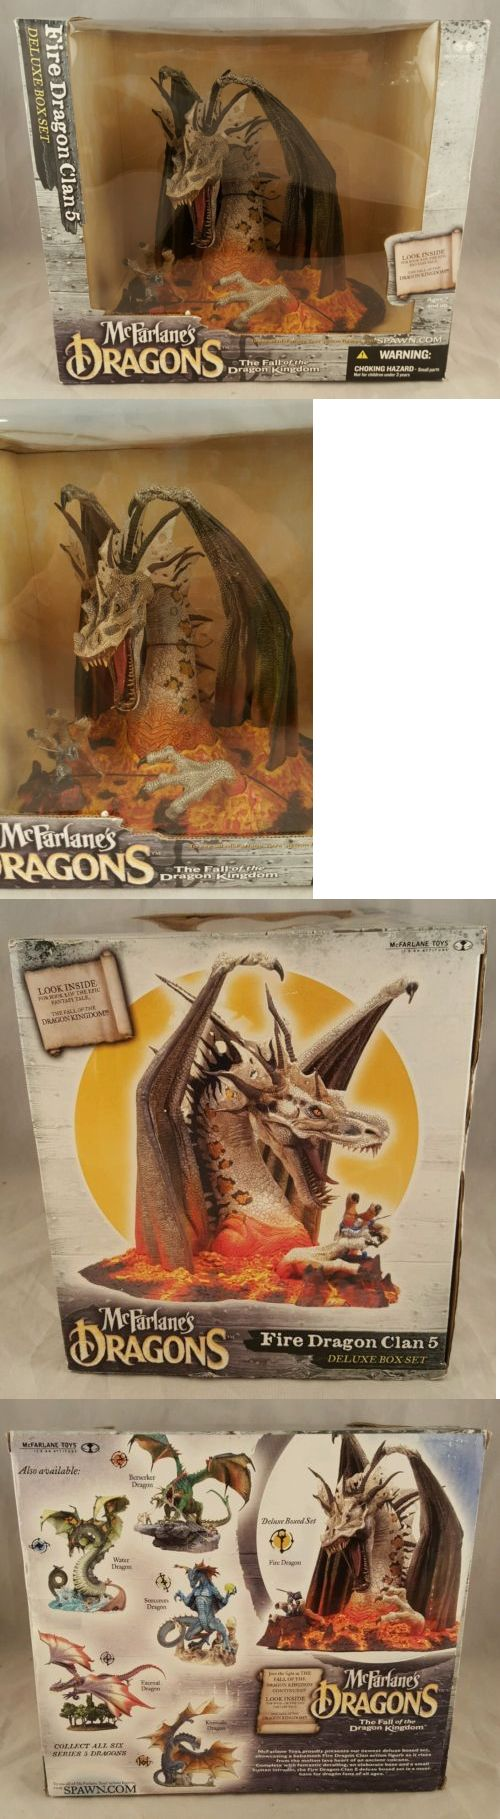 Fantasy 175693: Mcfarlane Toys Dragons Fire Dragon Clan 5 Deluxe Box Set Brand New 2005 -> BUY IT NOW ONLY: $47.99 on eBay!